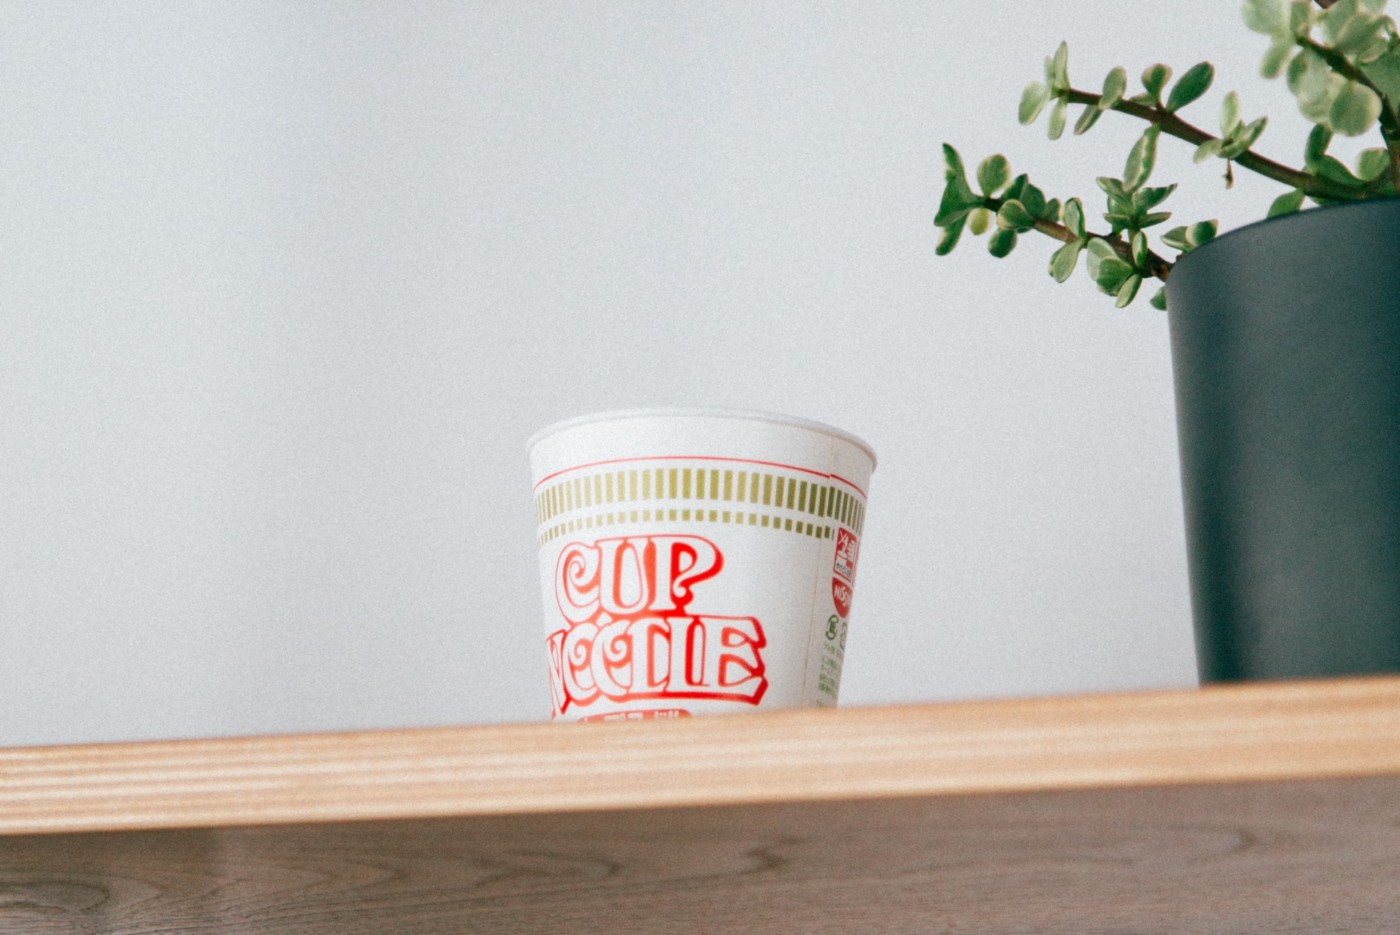 A Cup Noodle brand cup of ramen sitting on a wooden shelf next to a potted plant.